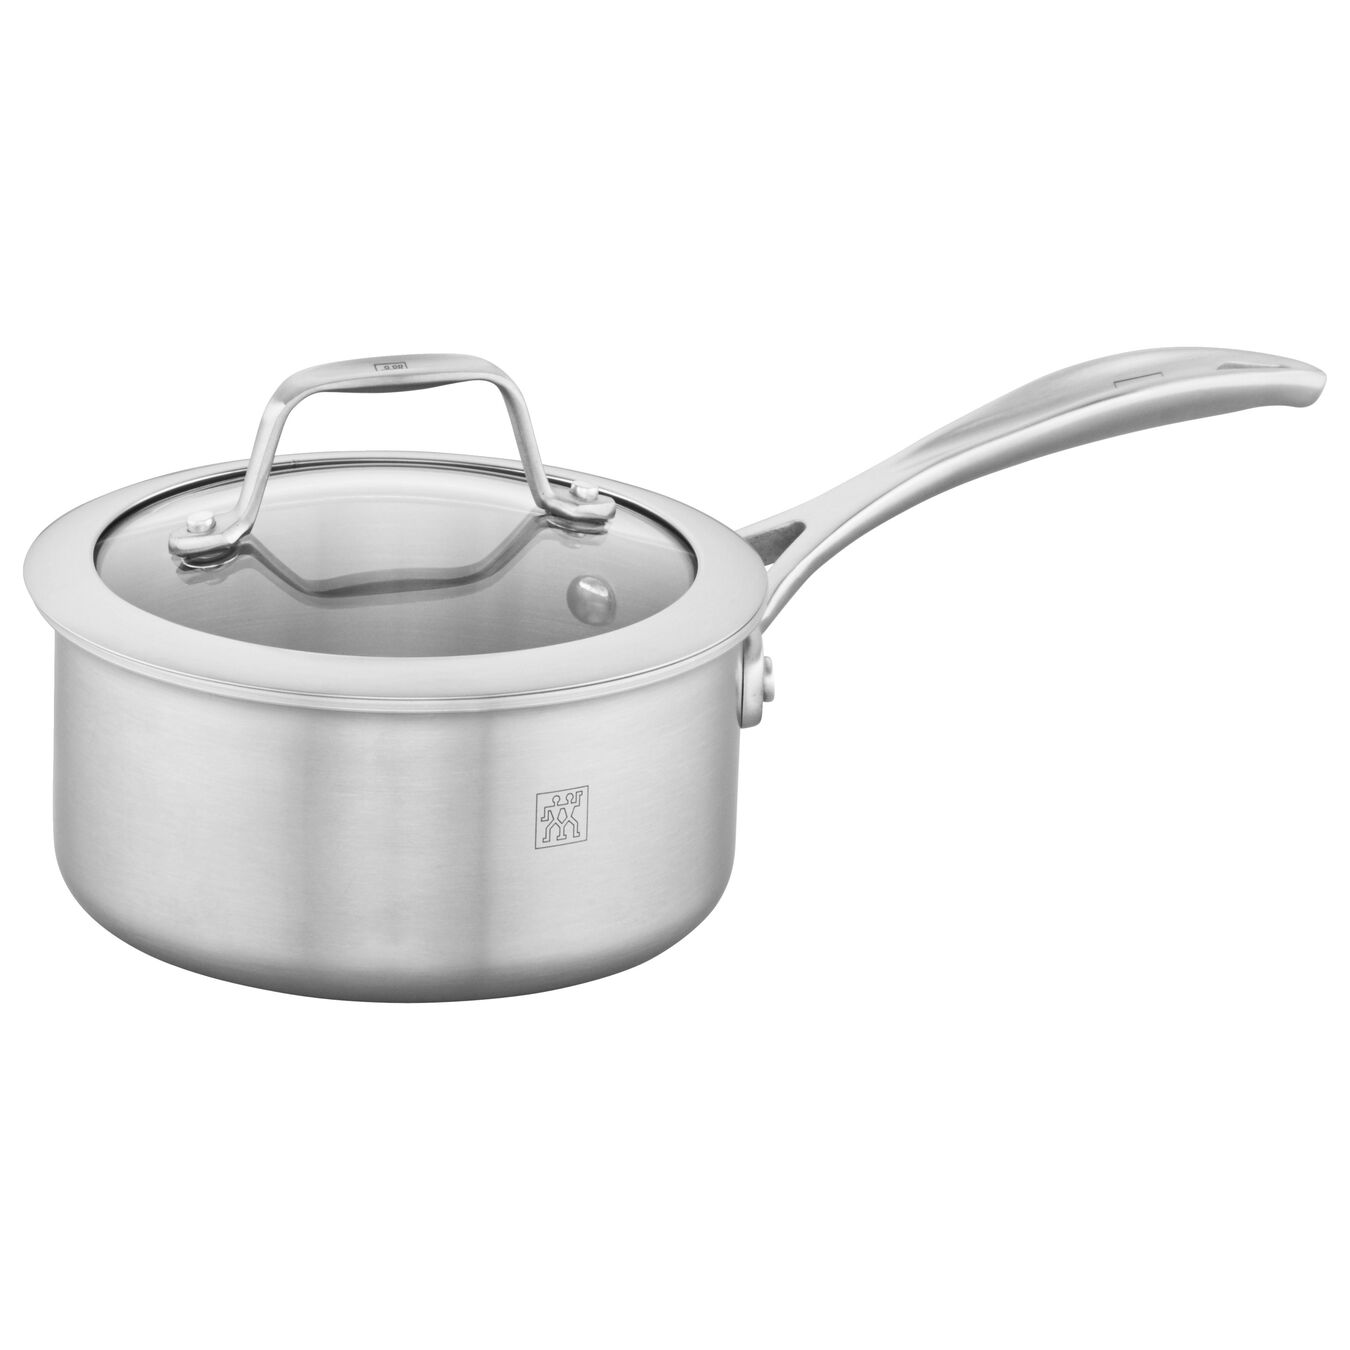 3-ply 1-qt Stainless Steel Saucepan,,large 1